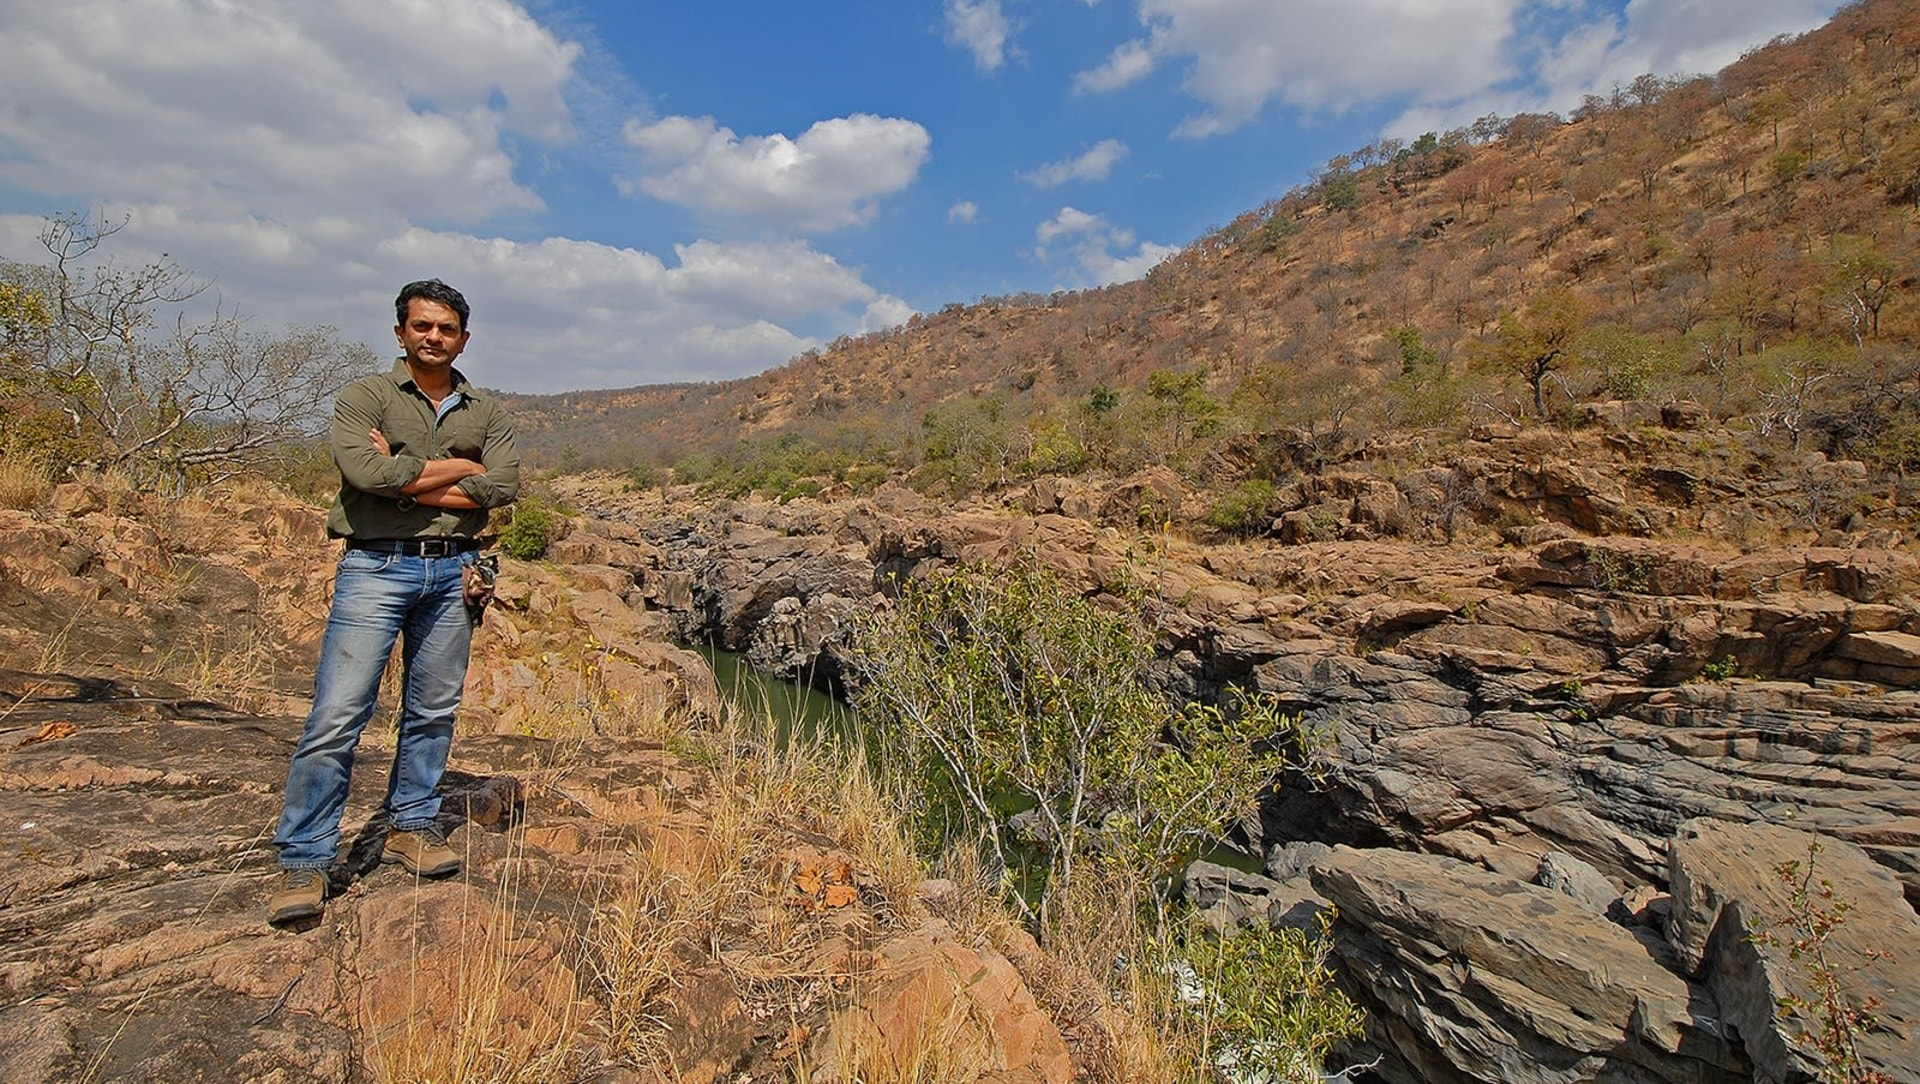 Anish Andheria: A Scientific Temper and a Wild Heart